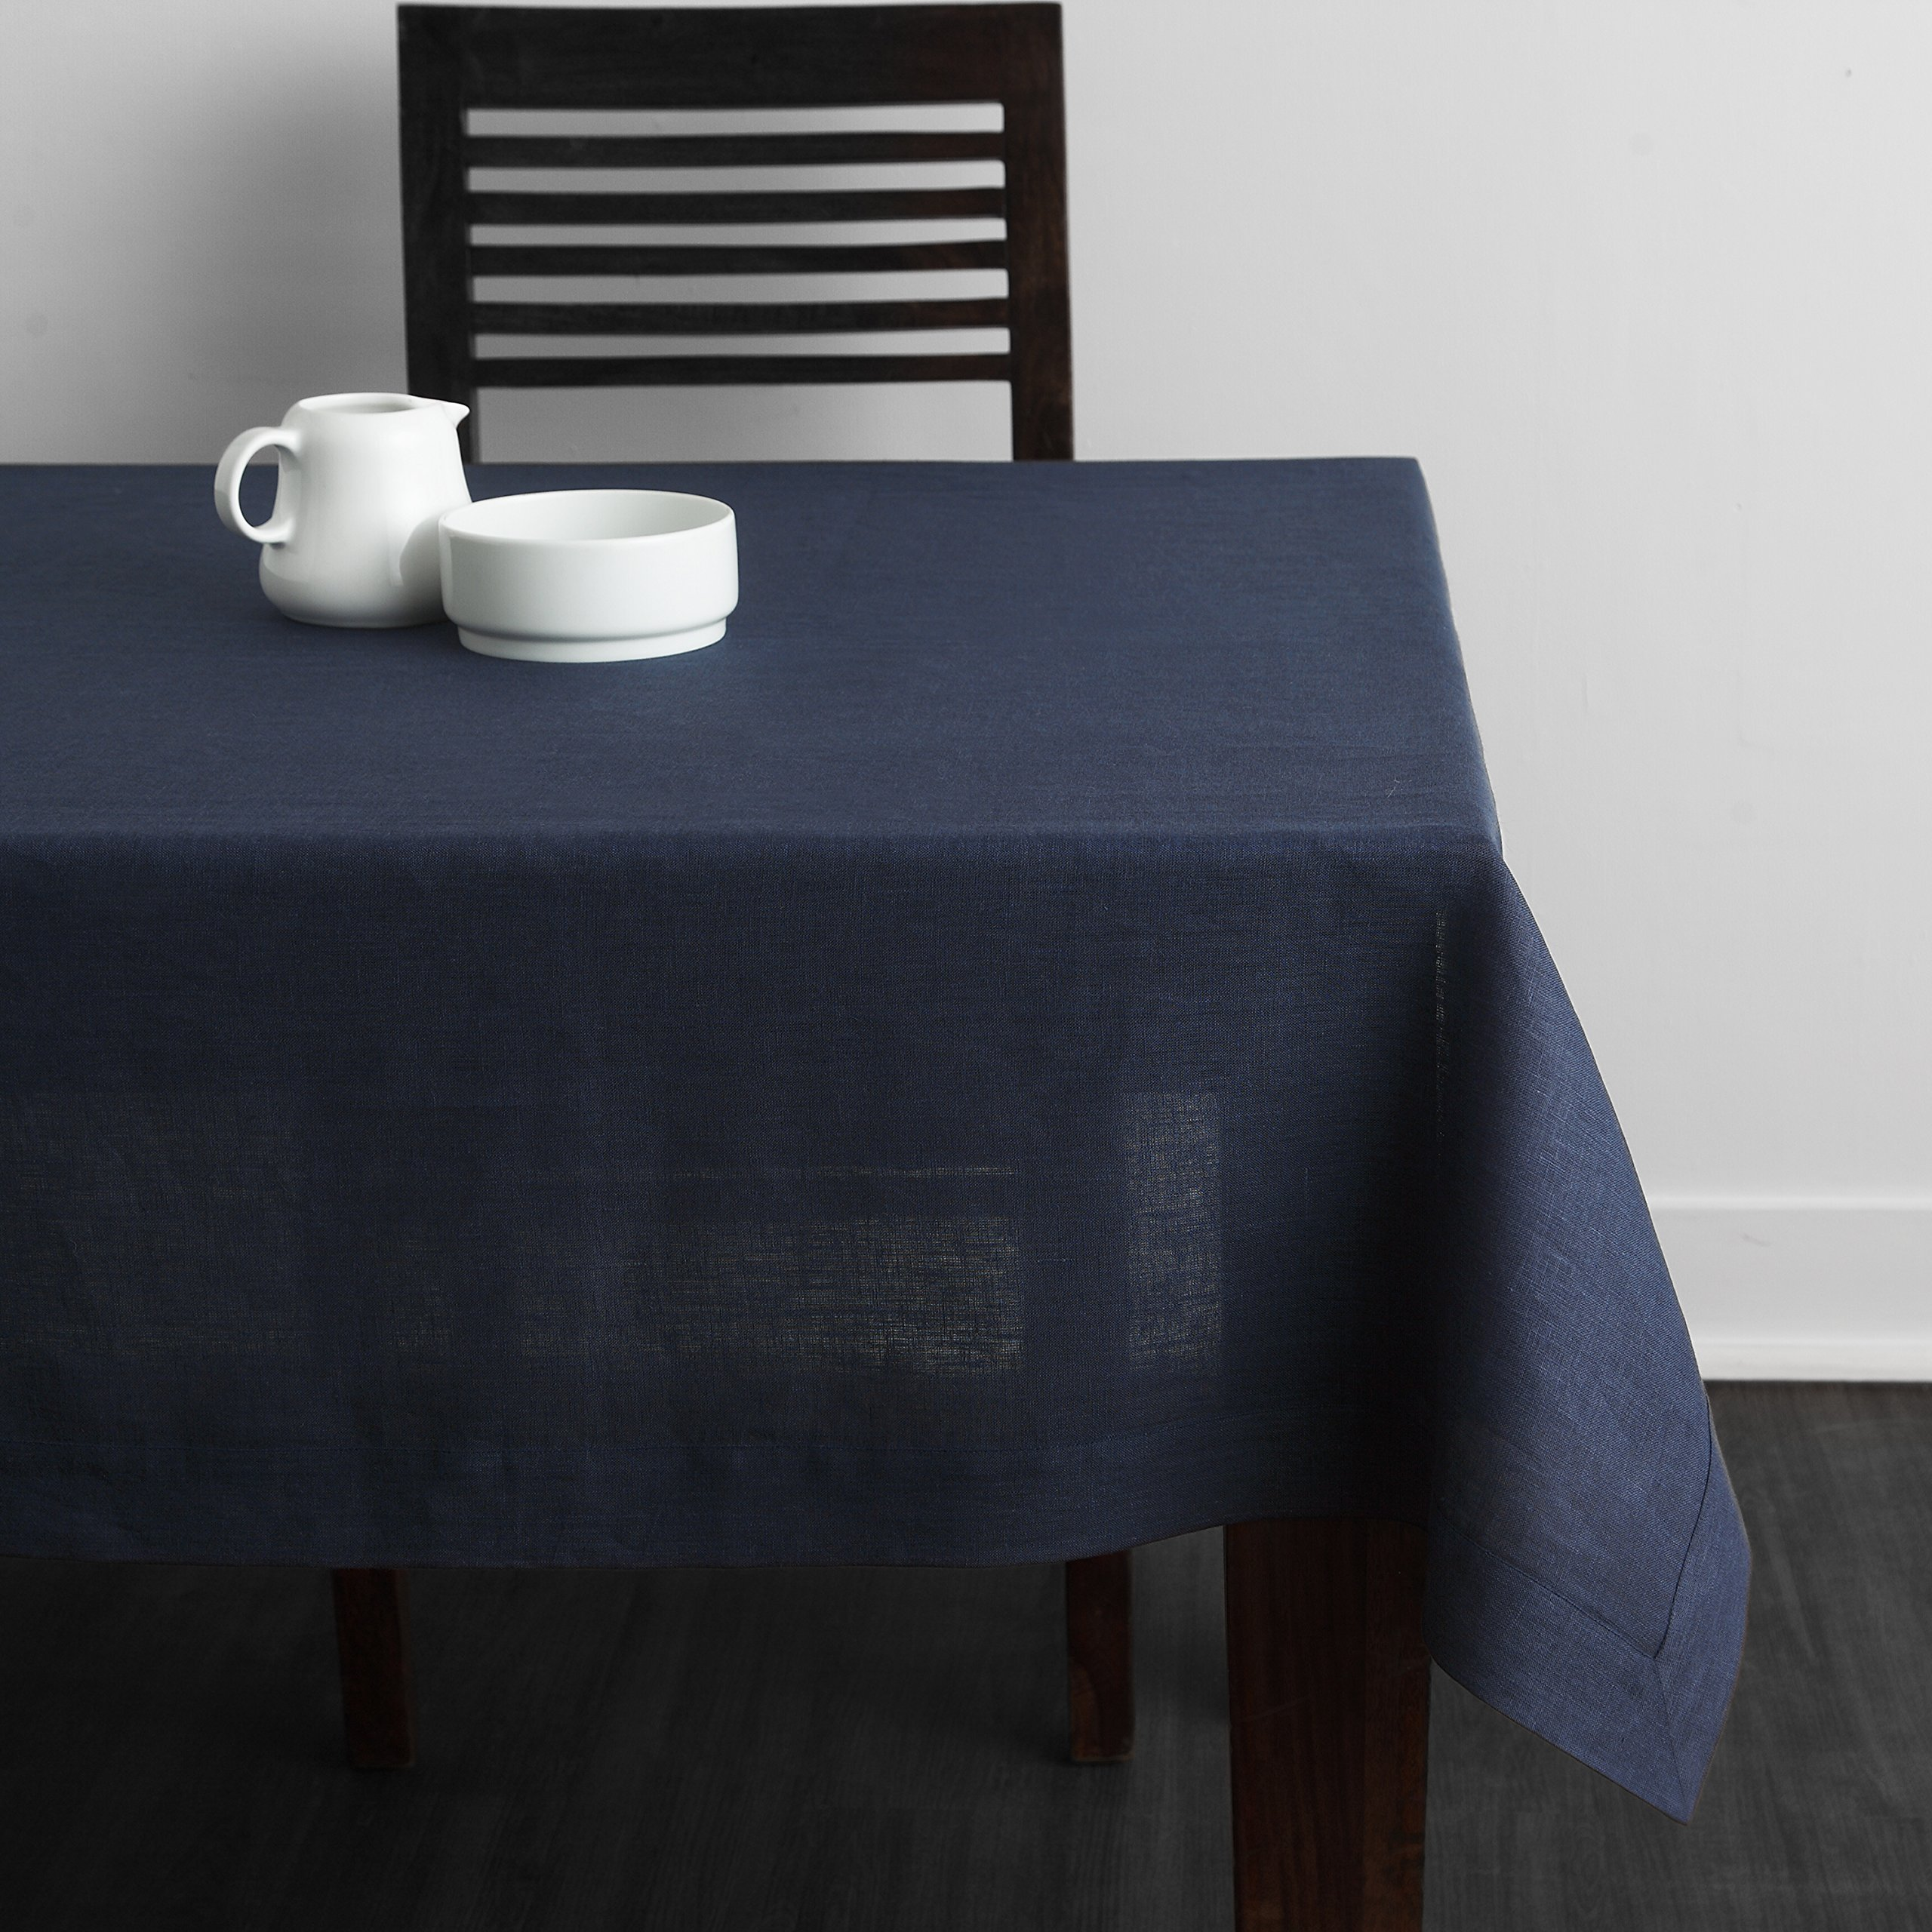 Solino Home Square Linen Tablecloth - 100% European Flax Natural Tablecloth - Athena 60 x 60 Inch Navy